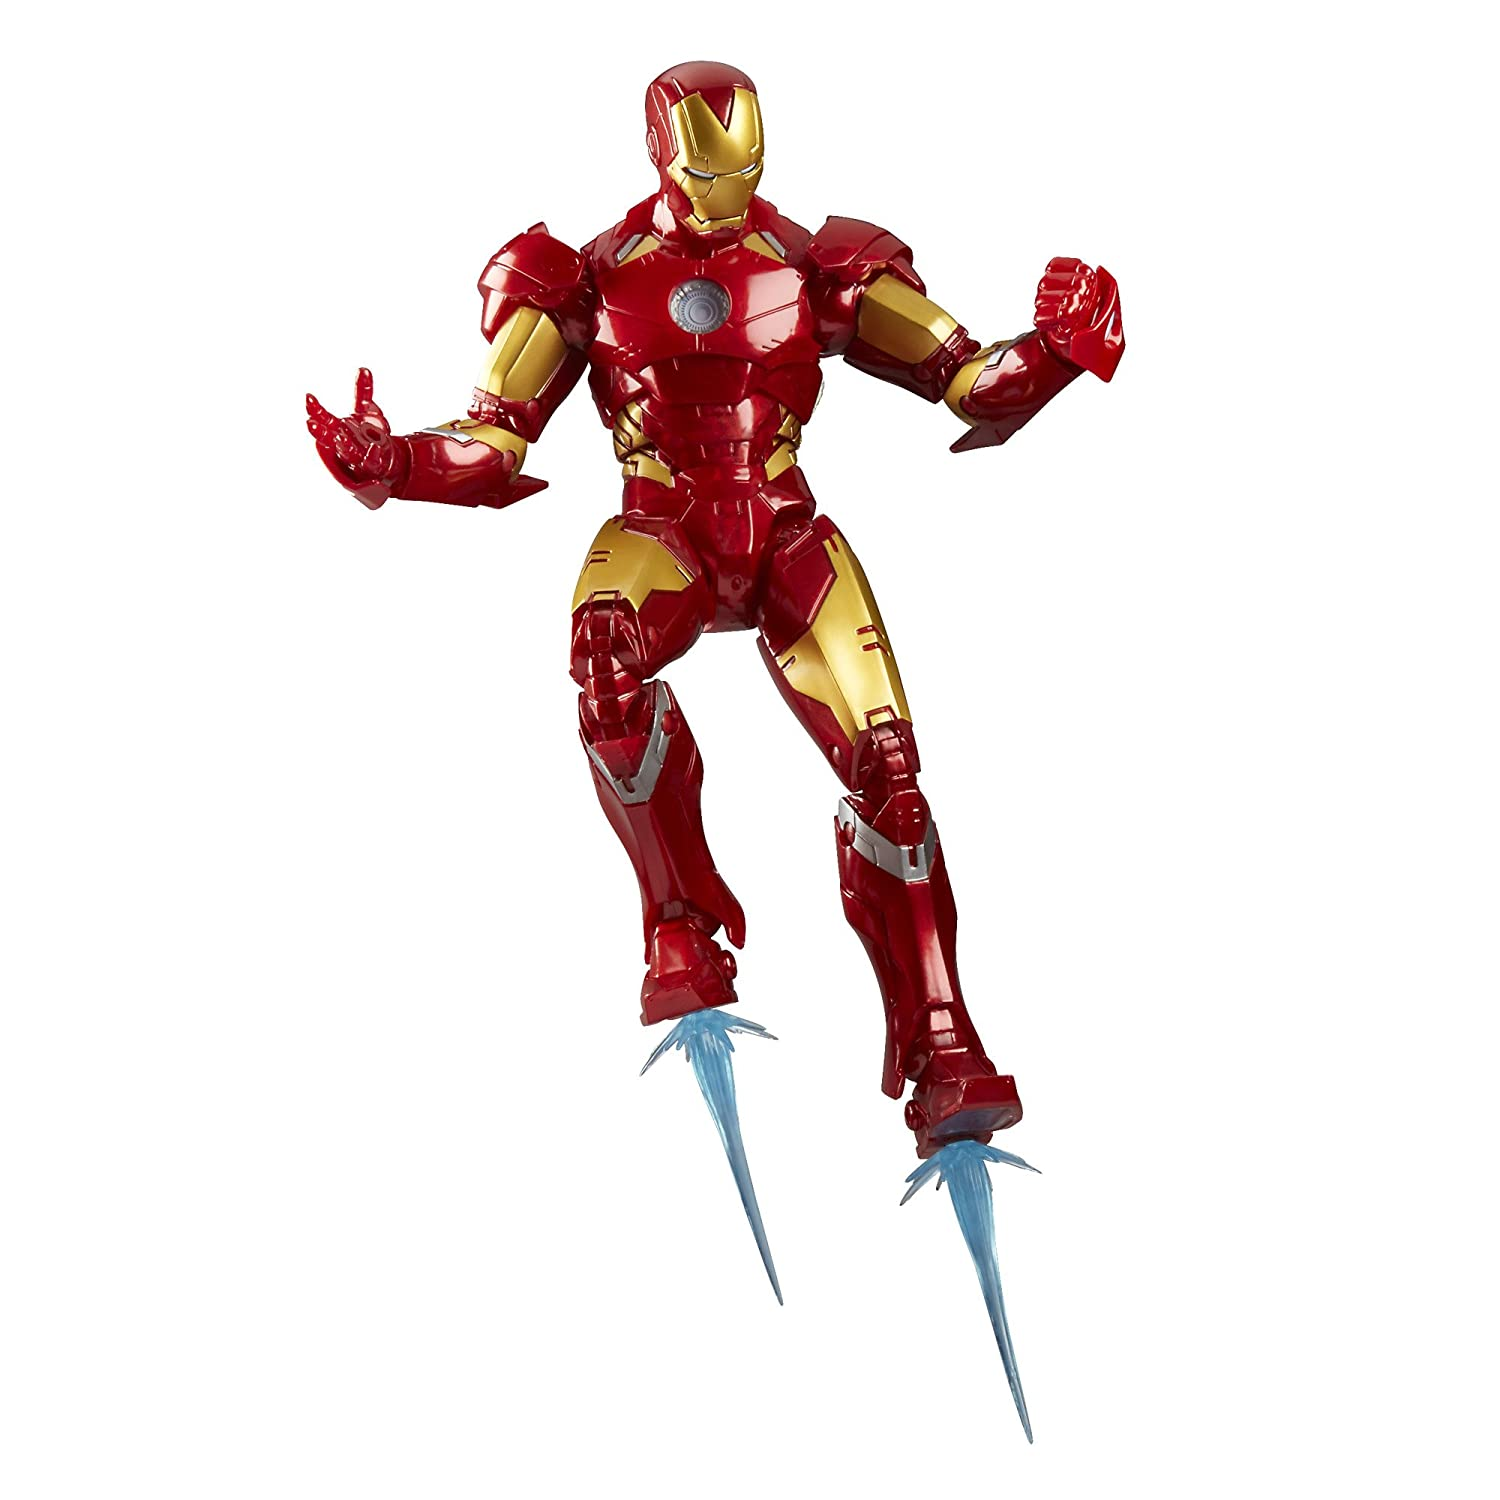 Iron man online coloring games - Iron Man Online Coloring Games 31